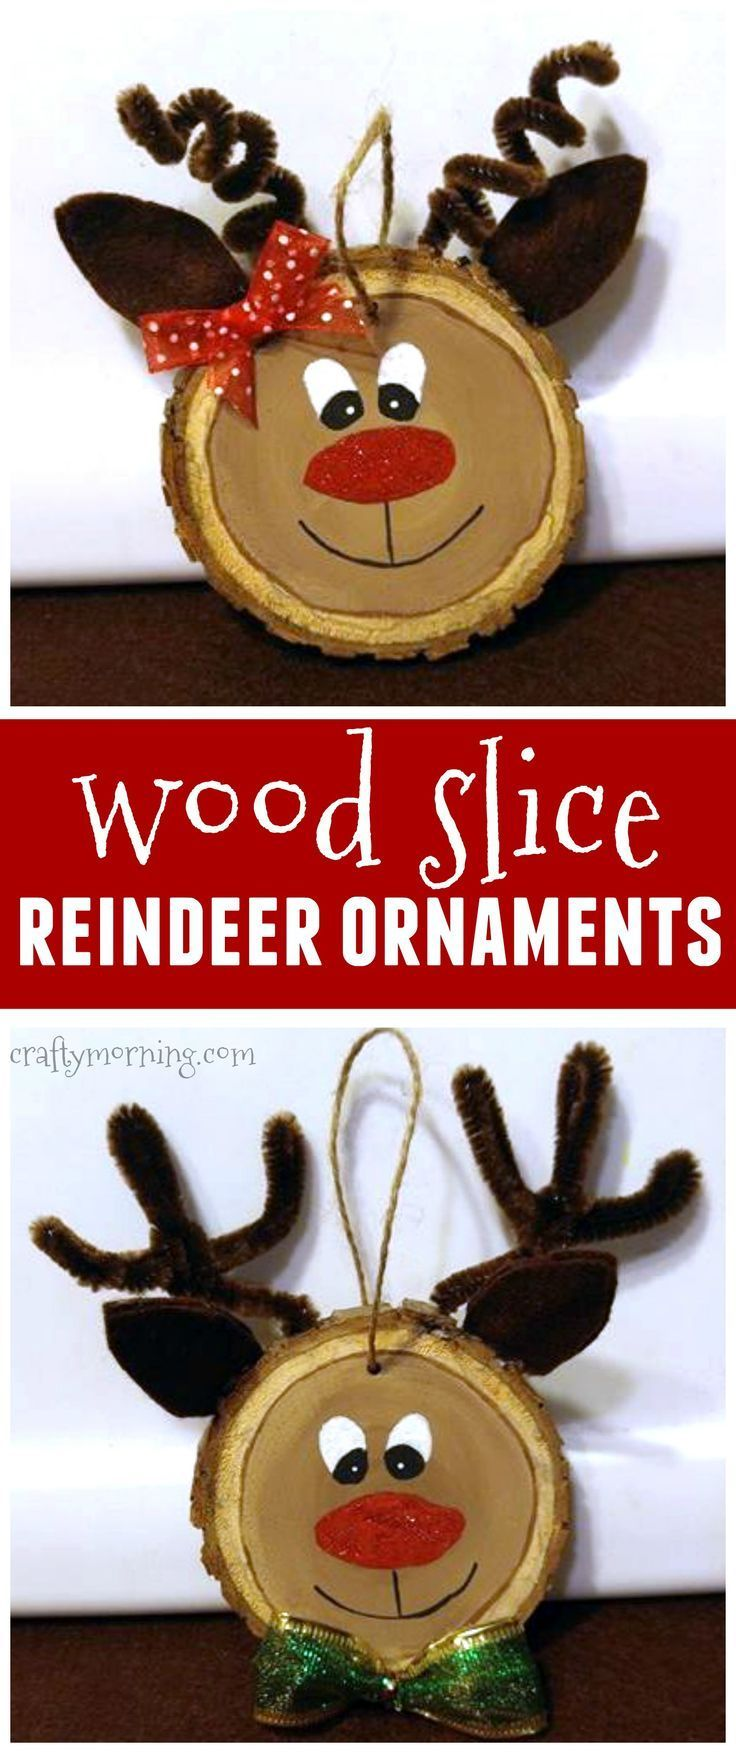 Wood slice reindeer ornaments for a kids Christmas craft...these would make cute gifts too!